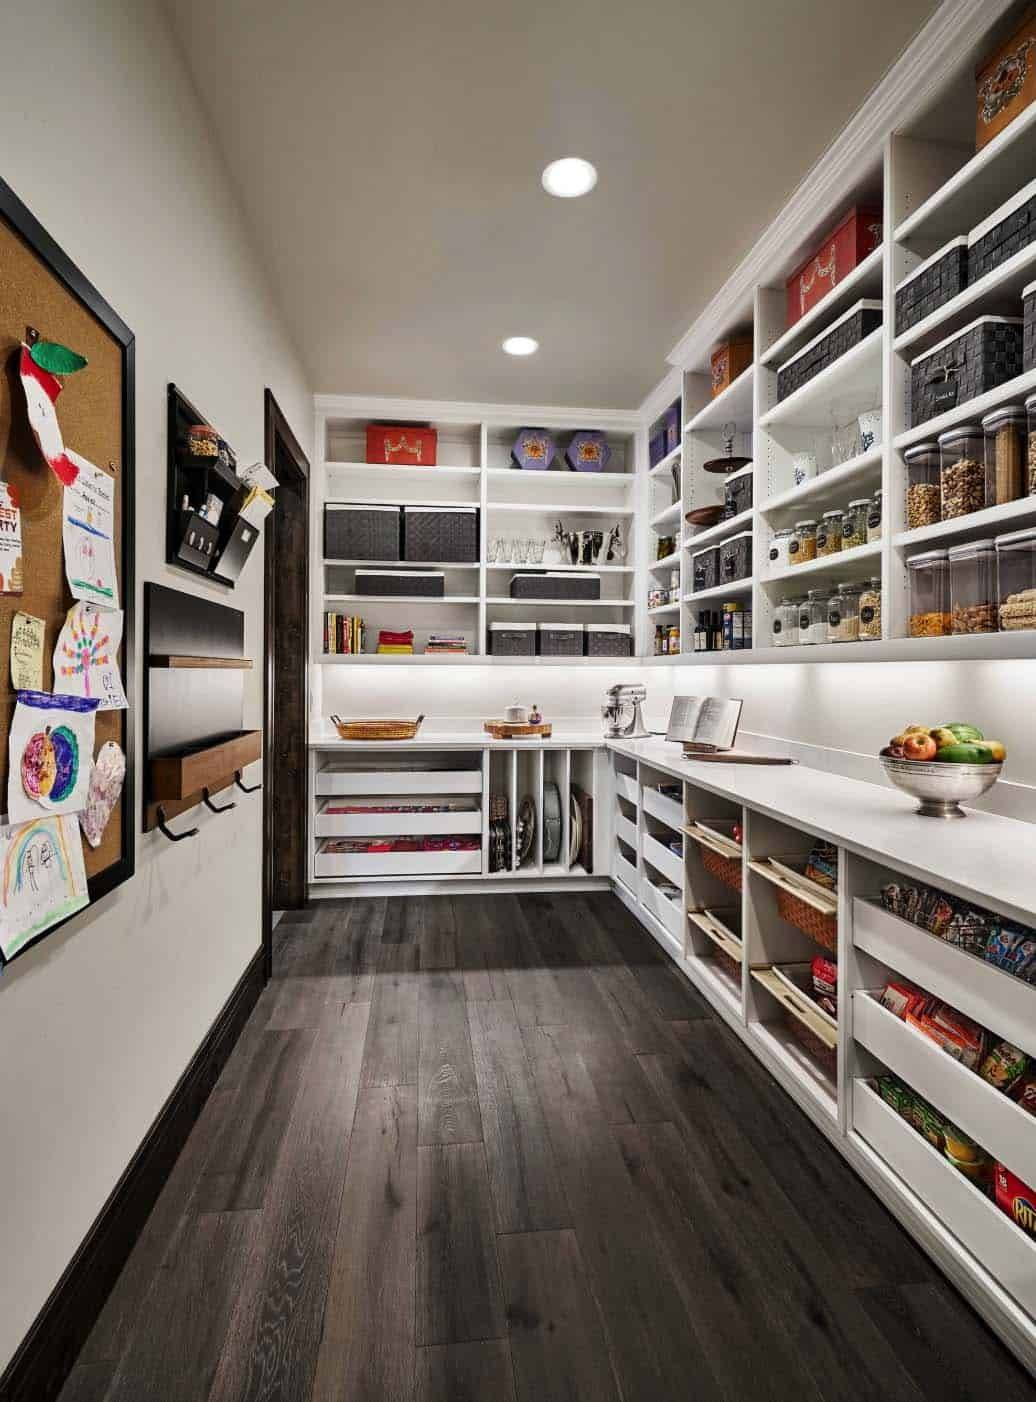 Kitchen storage with mail assortment section